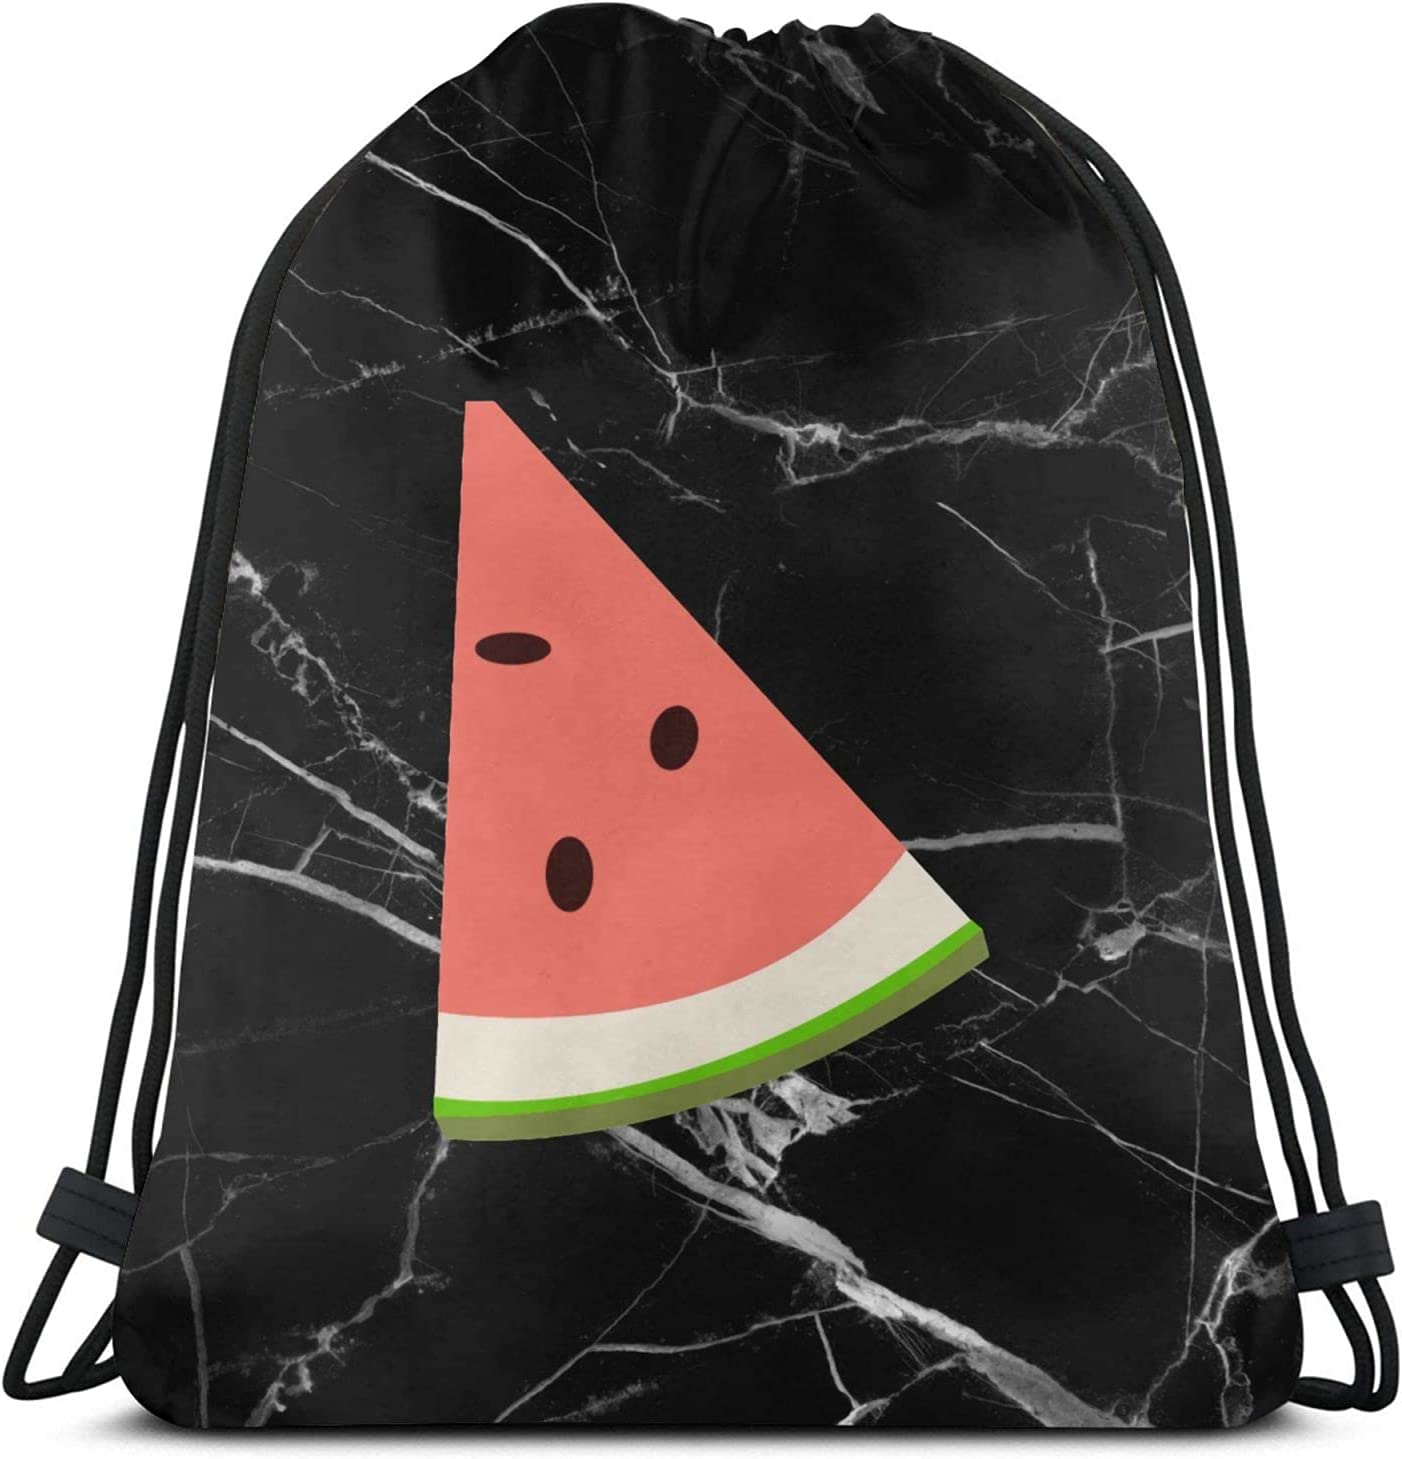 Watermelon Drawstring Backpac k Bombing free shipping Sports Bags for String Bag Max 70% OFF Gym H